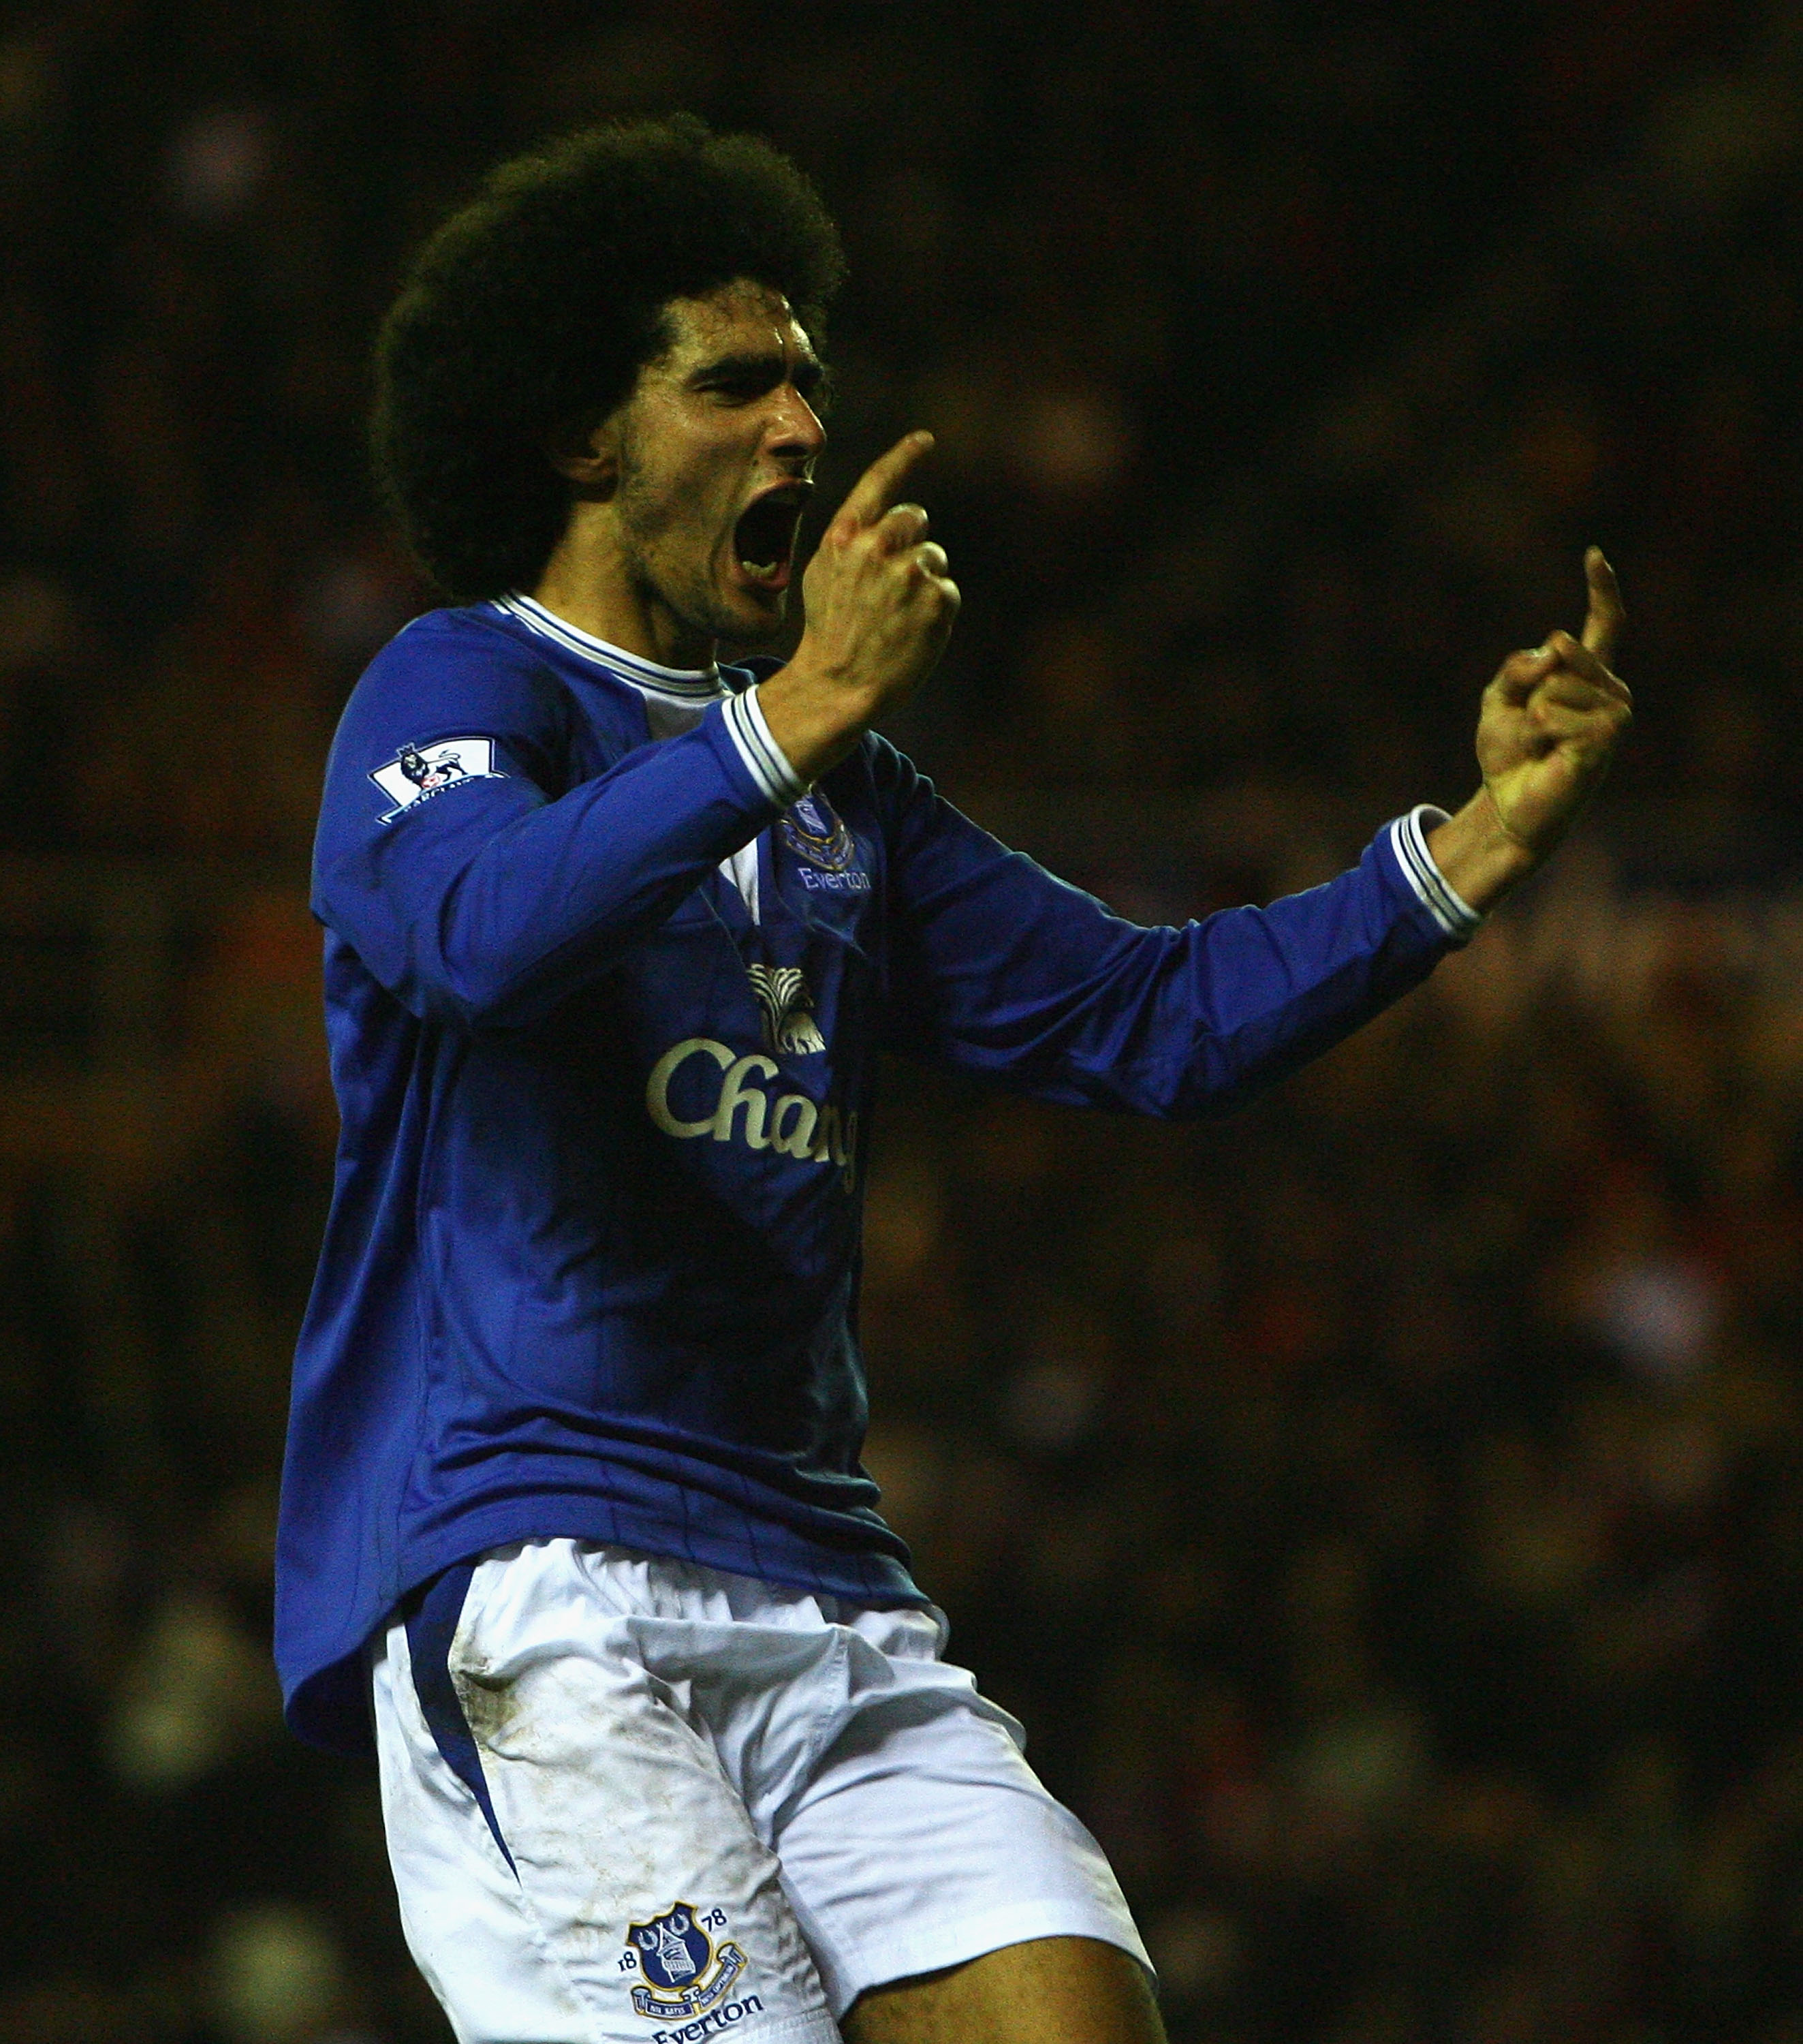 SUNDERLAND, ENGLAND - DECEMBER 26:  Marouane Fellaini of Everton celebrates his goal during the Barclays Premier League match between Sunderland and Everton at the Stadium of Light on December 26, 2009 in Sunderland, England.  (Photo by Matthew Lewis/Gett